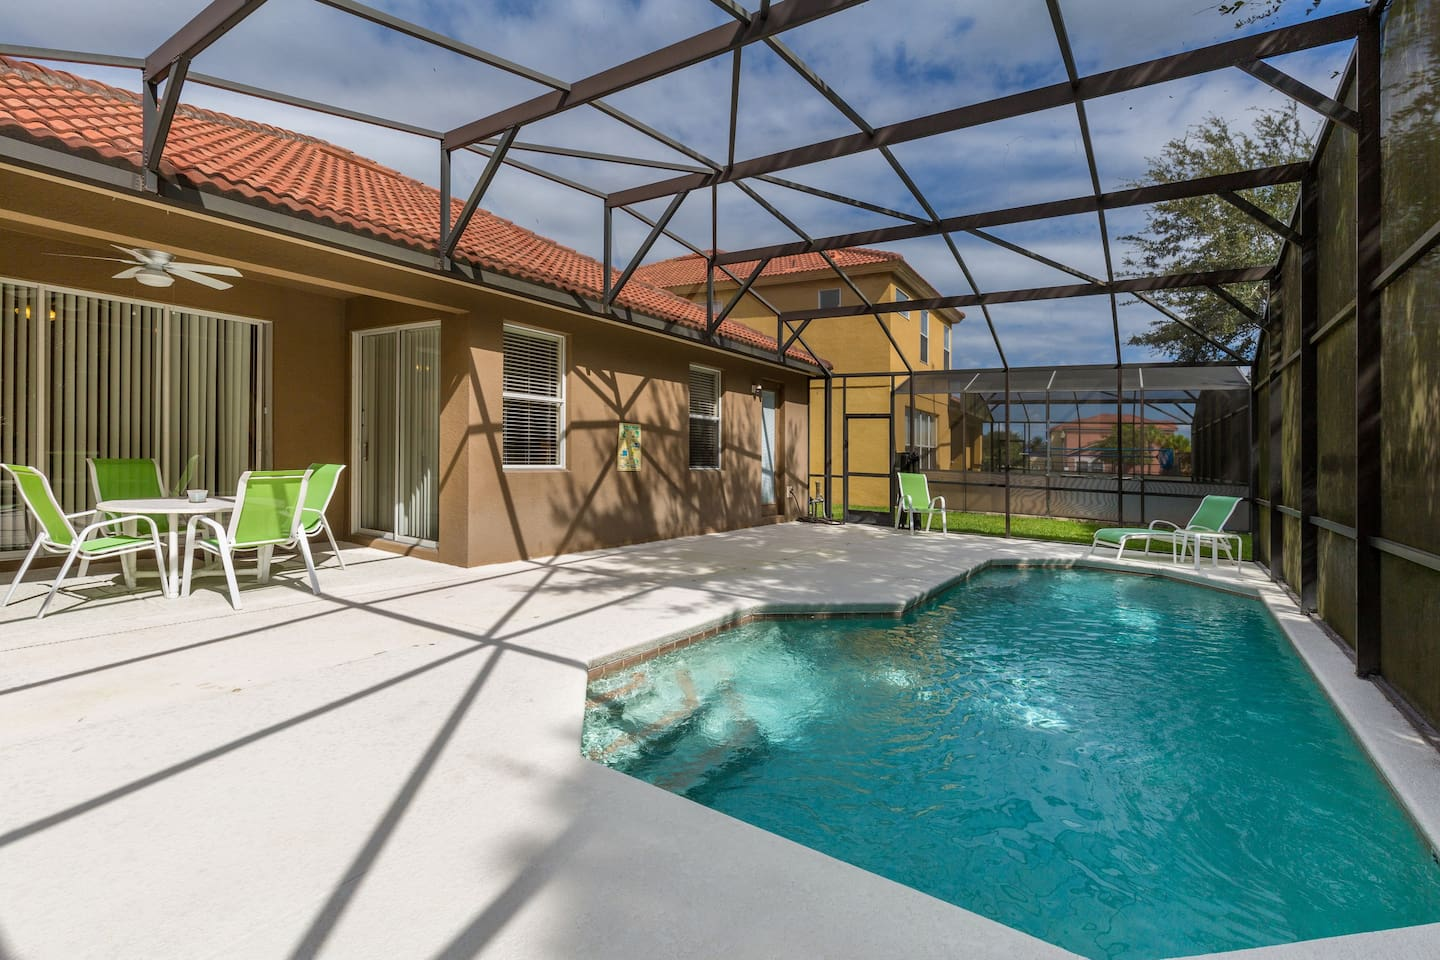 Casa espetacular perto da Disney - Houses for Rent in Kissimmee ...